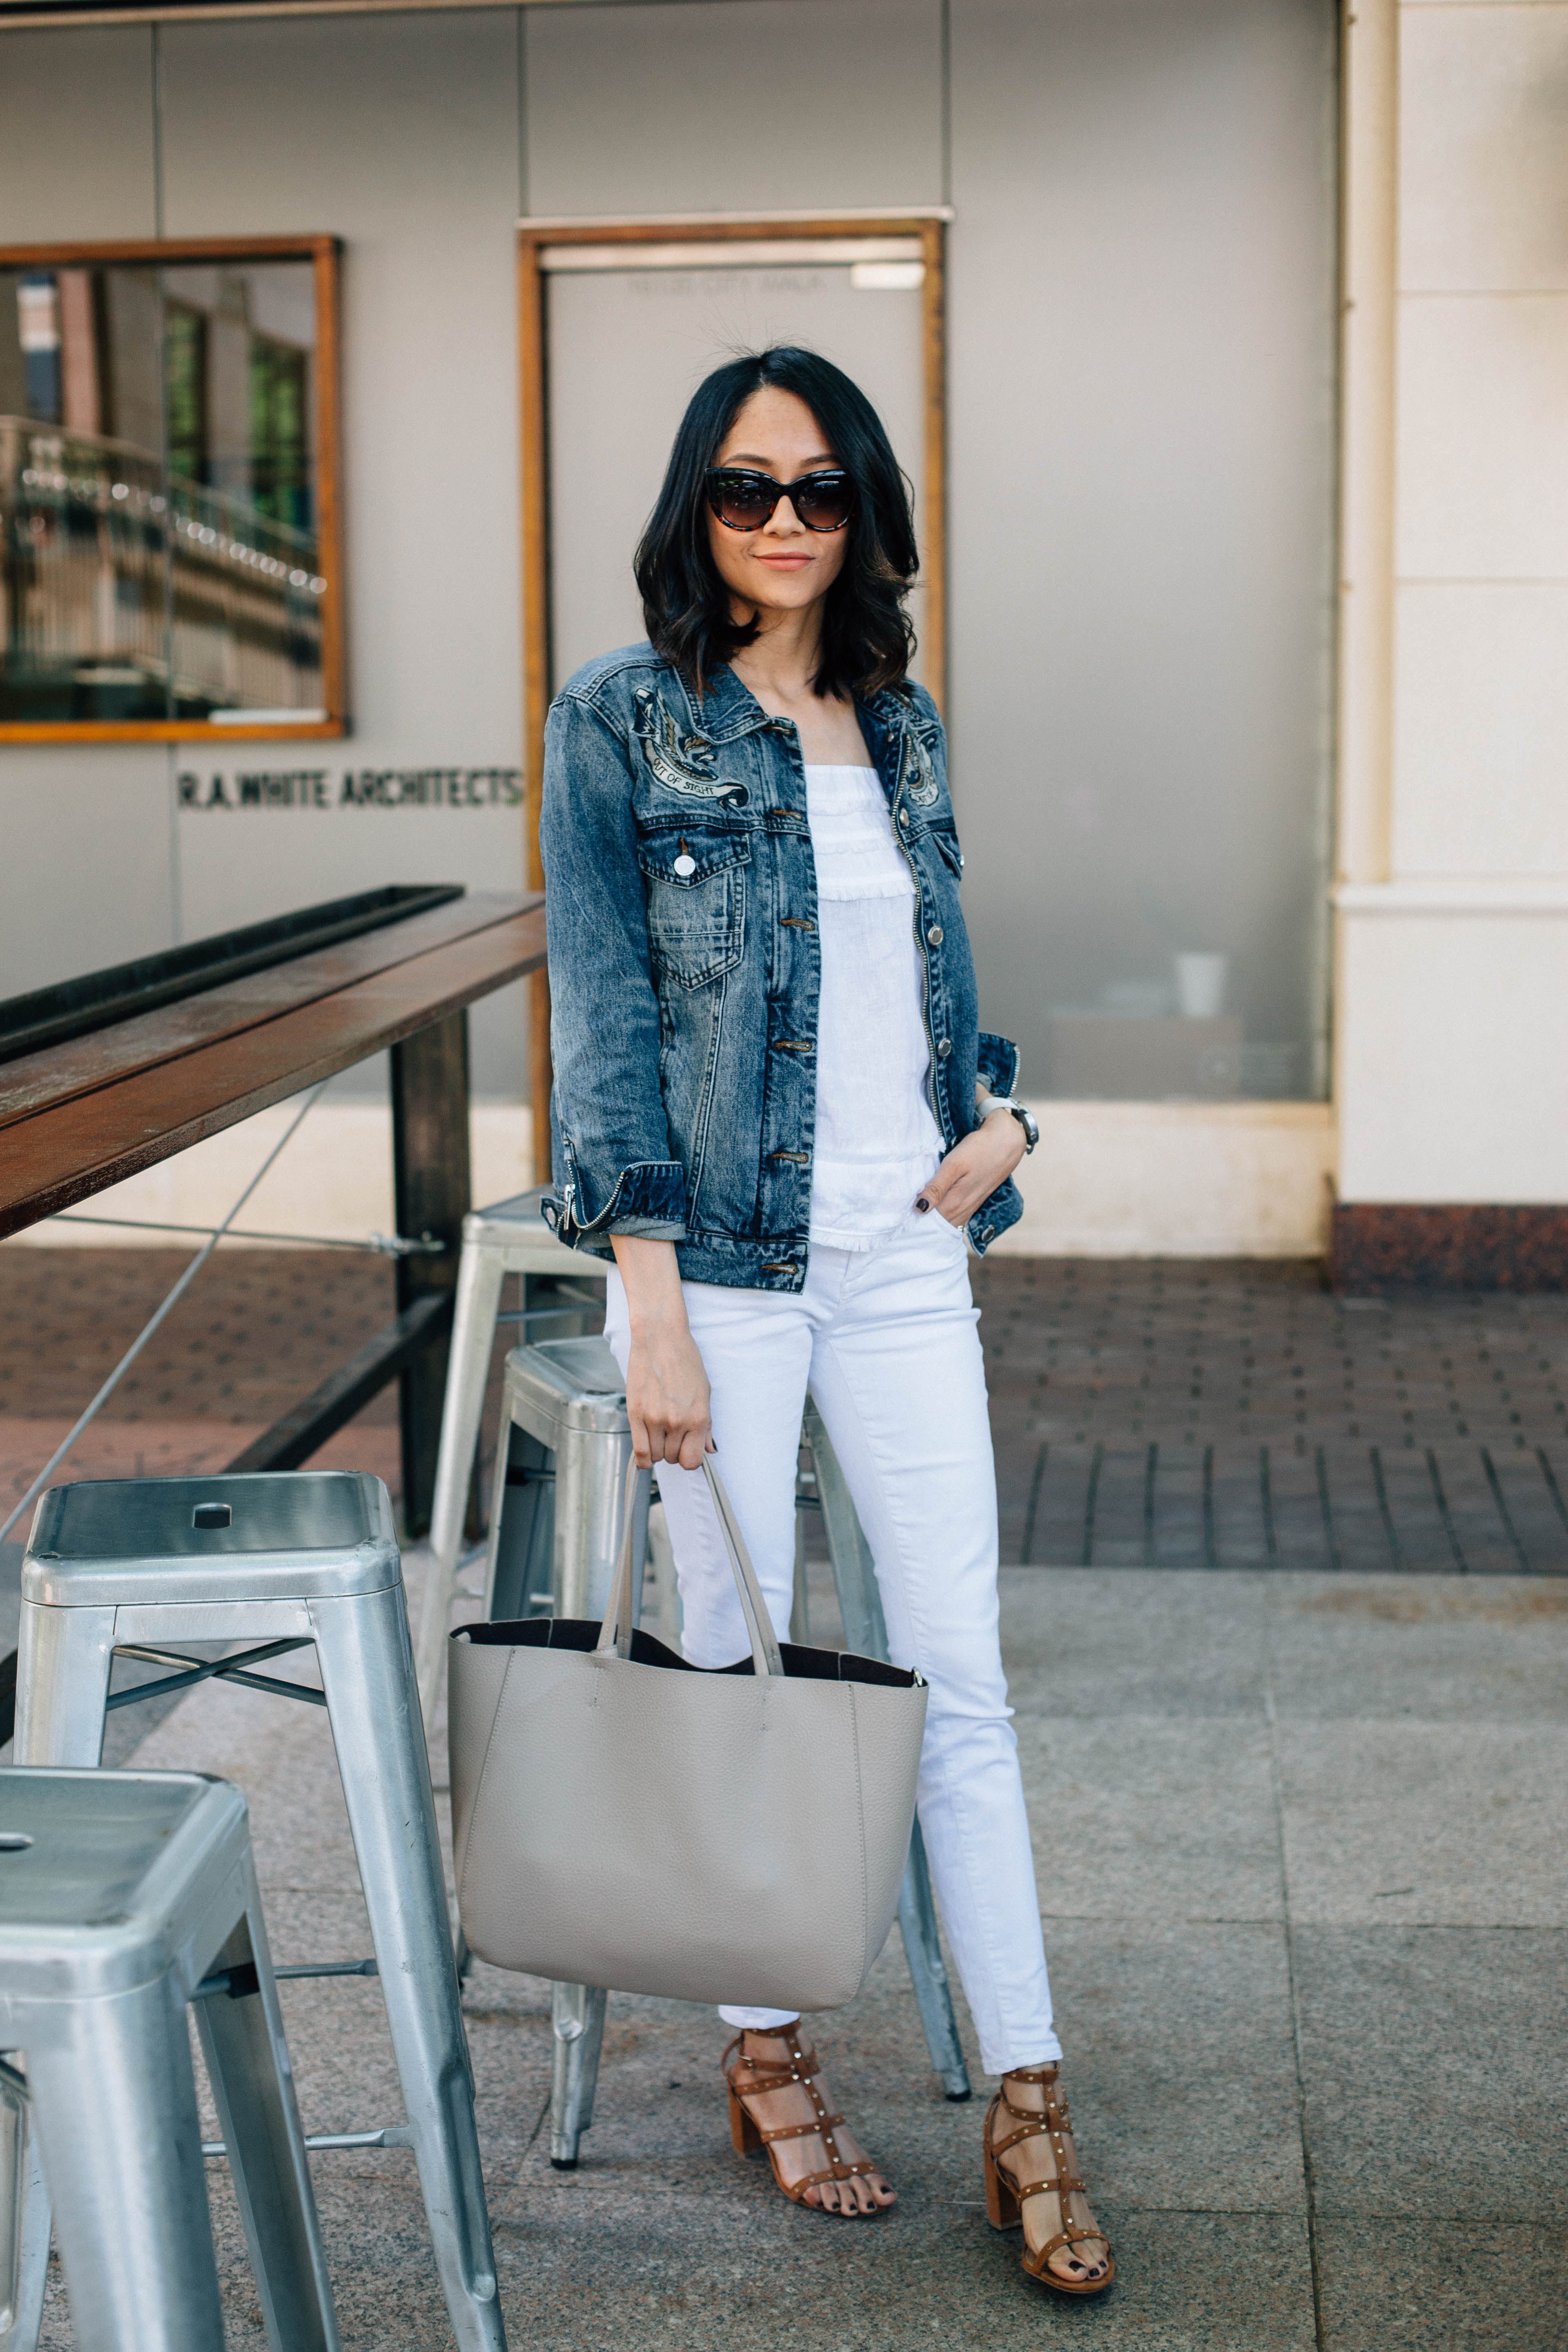 Lifestyle blogger Lilly Beltran of Daily Craving wearing a denim on denim look with an oversized denim jacket and studded sandals